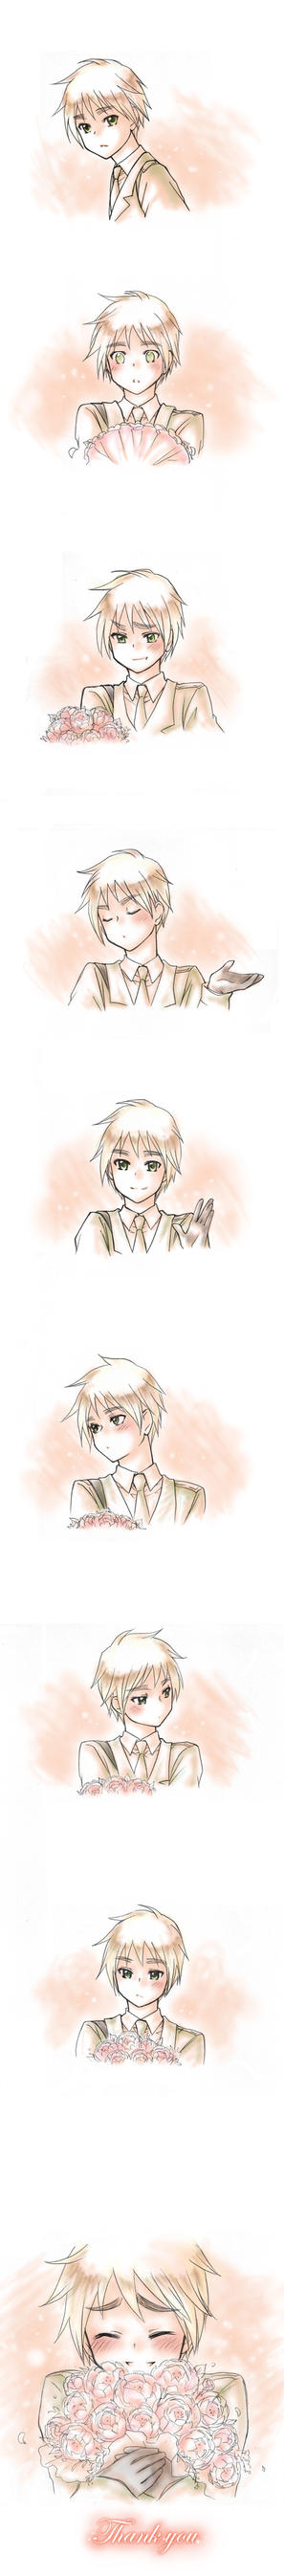 "aph england ""thank you"" by mikitaka"